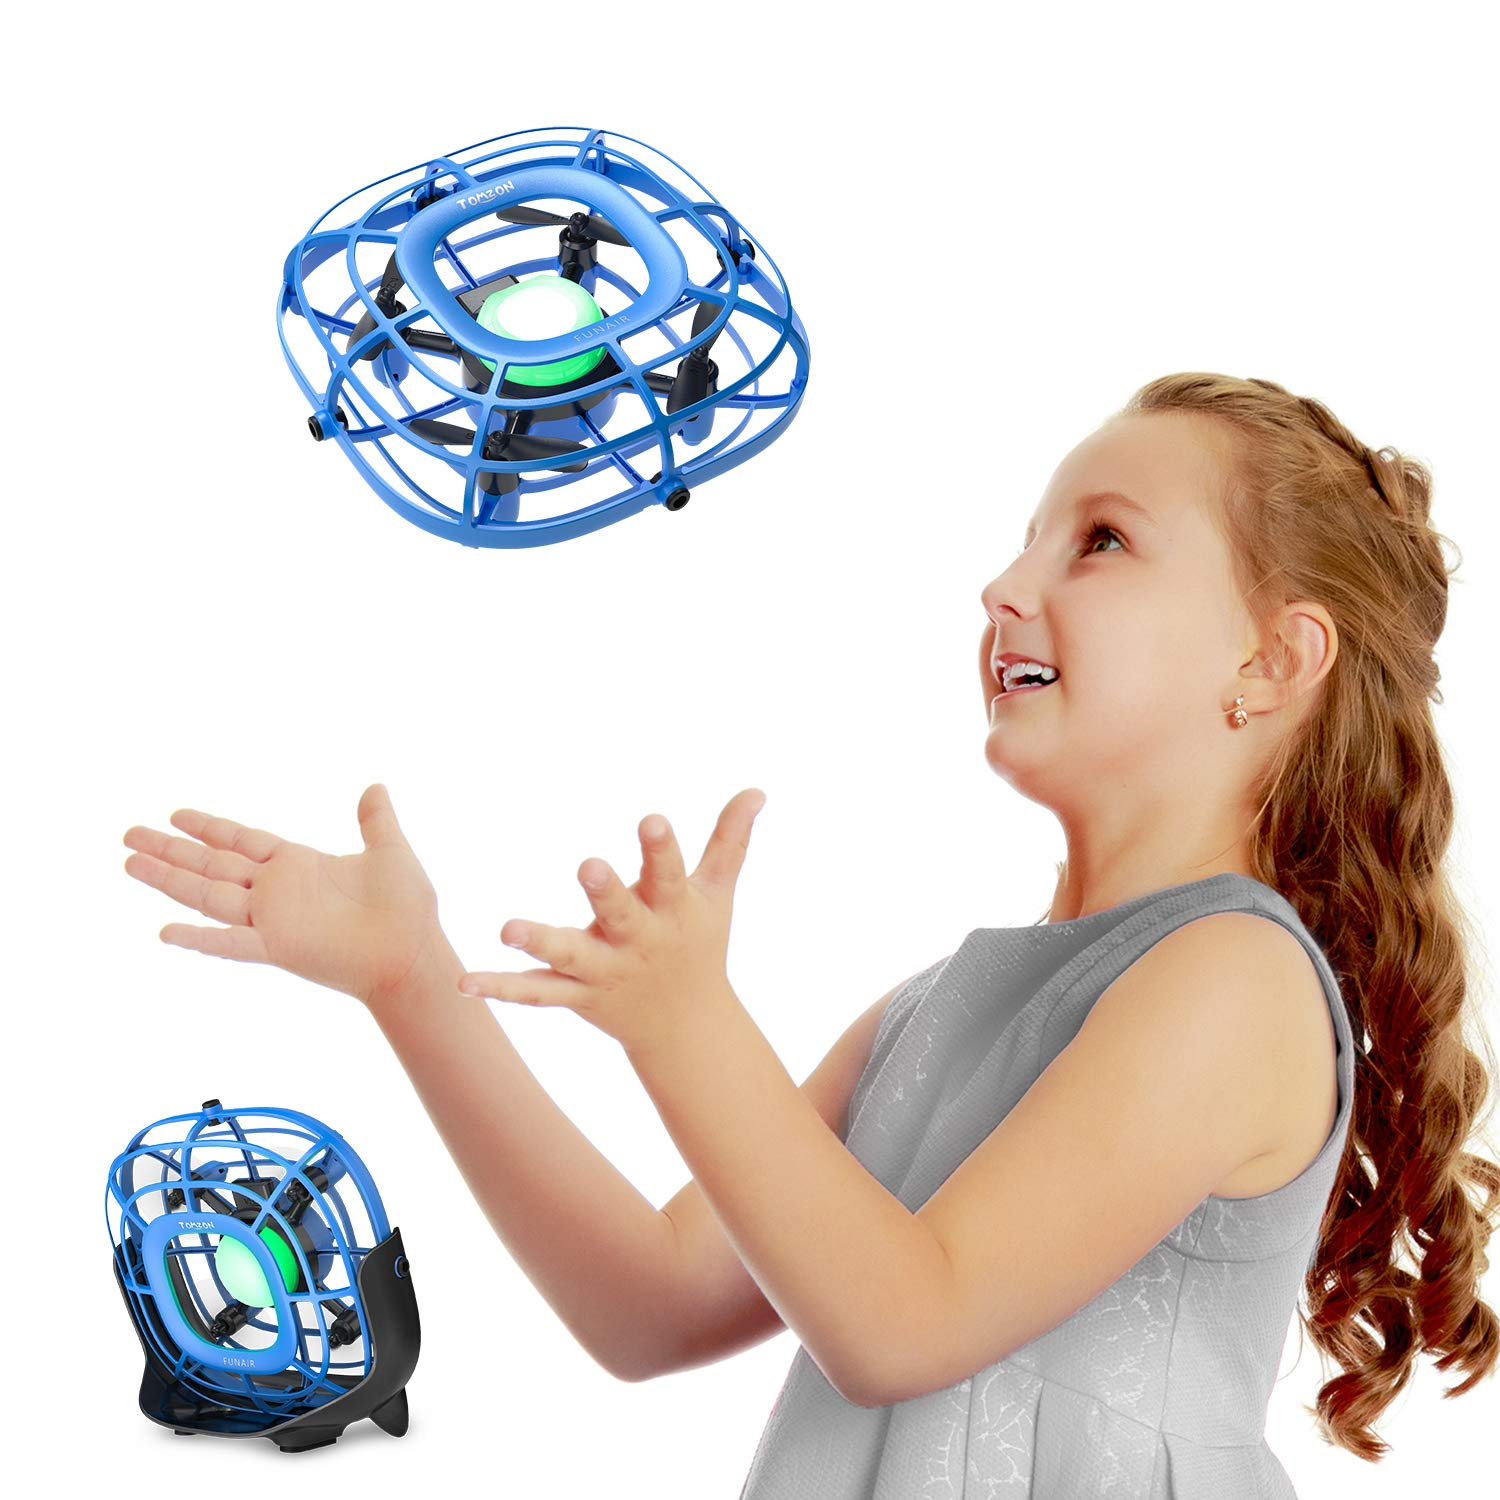 Mini Drone, Levitation UFO Drone, Hand Operated Quad Induction, Easy Controlled 2 Speed, Mini Handheld USB Fan,Toys for Boys and Girls,Tomzon A15 Blue by Tomzon